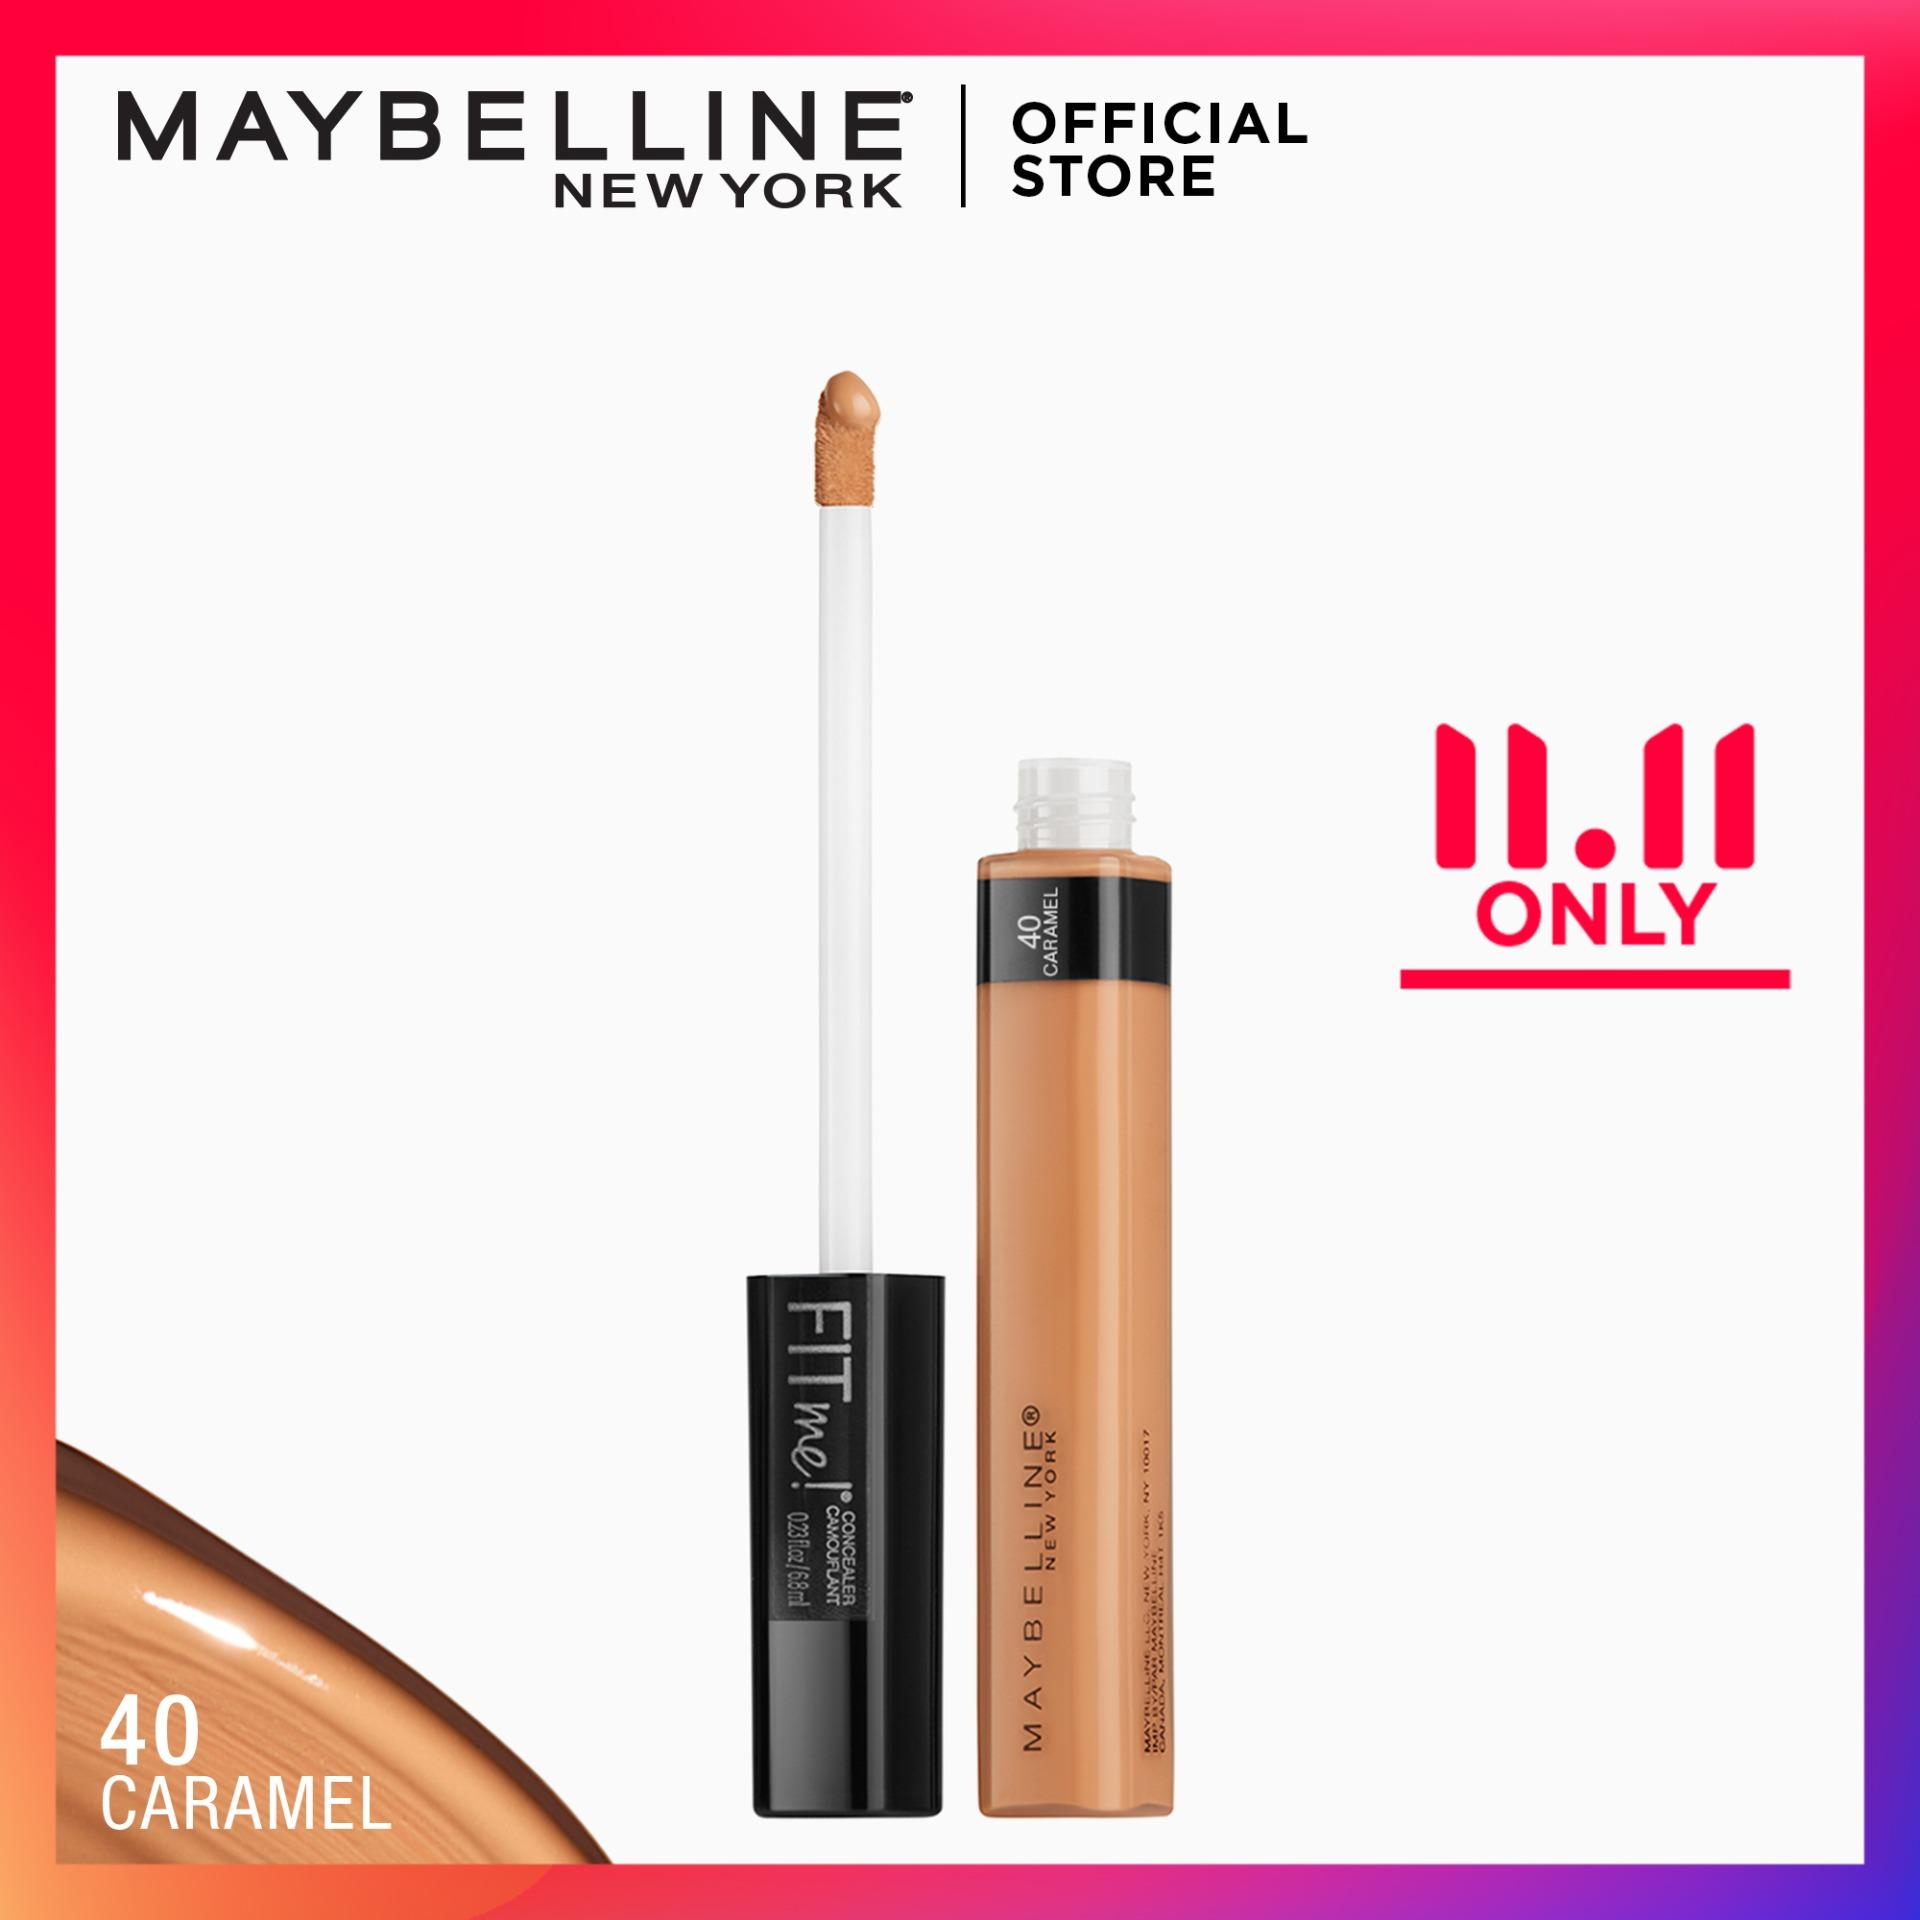 Fit Me Flawless Natural Concealer - 40 Caramel [USA Bestseller] by Maybelline Philippines